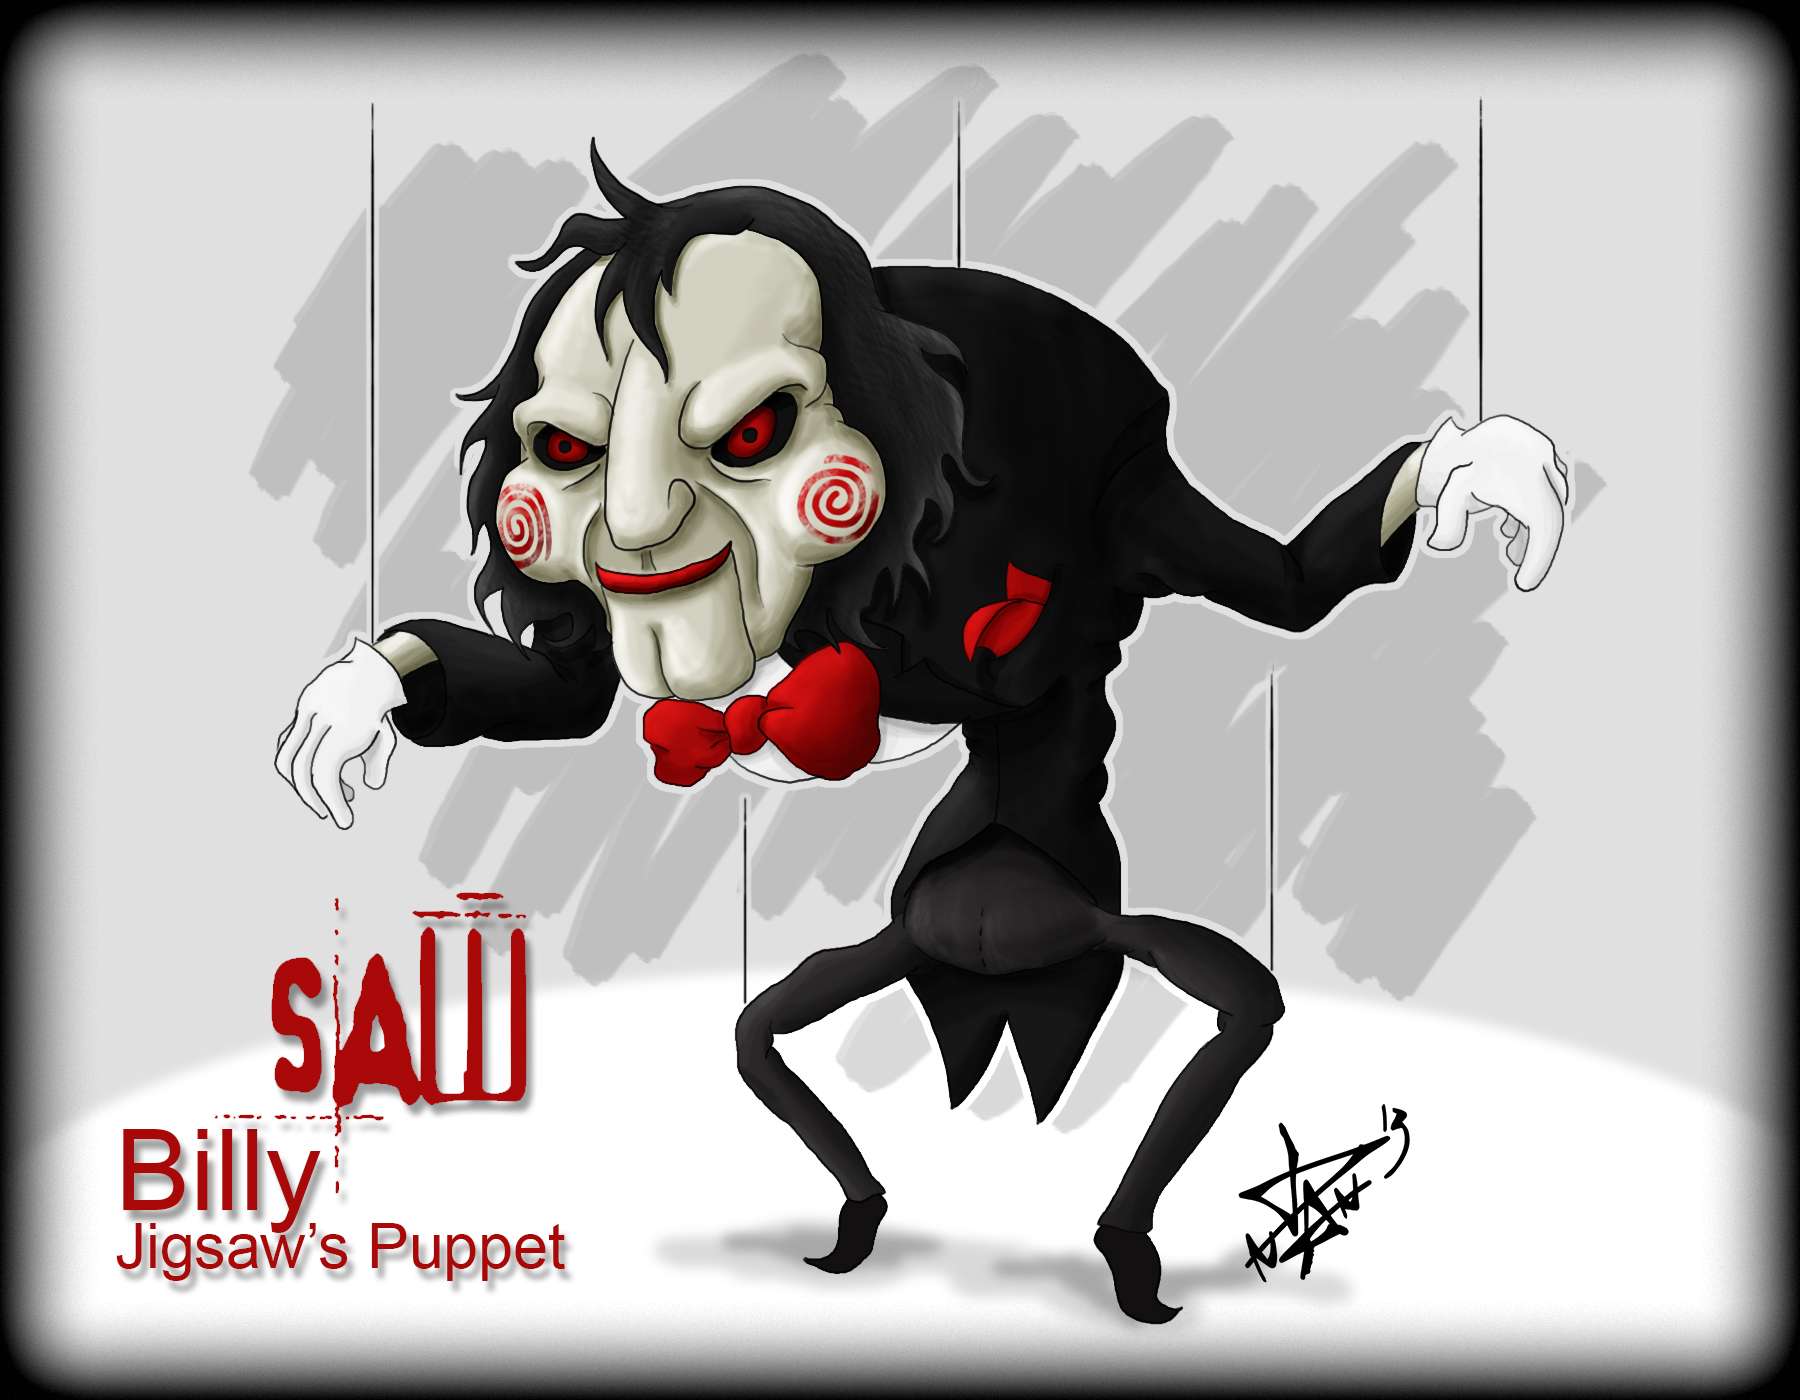 Billy, The Puppet